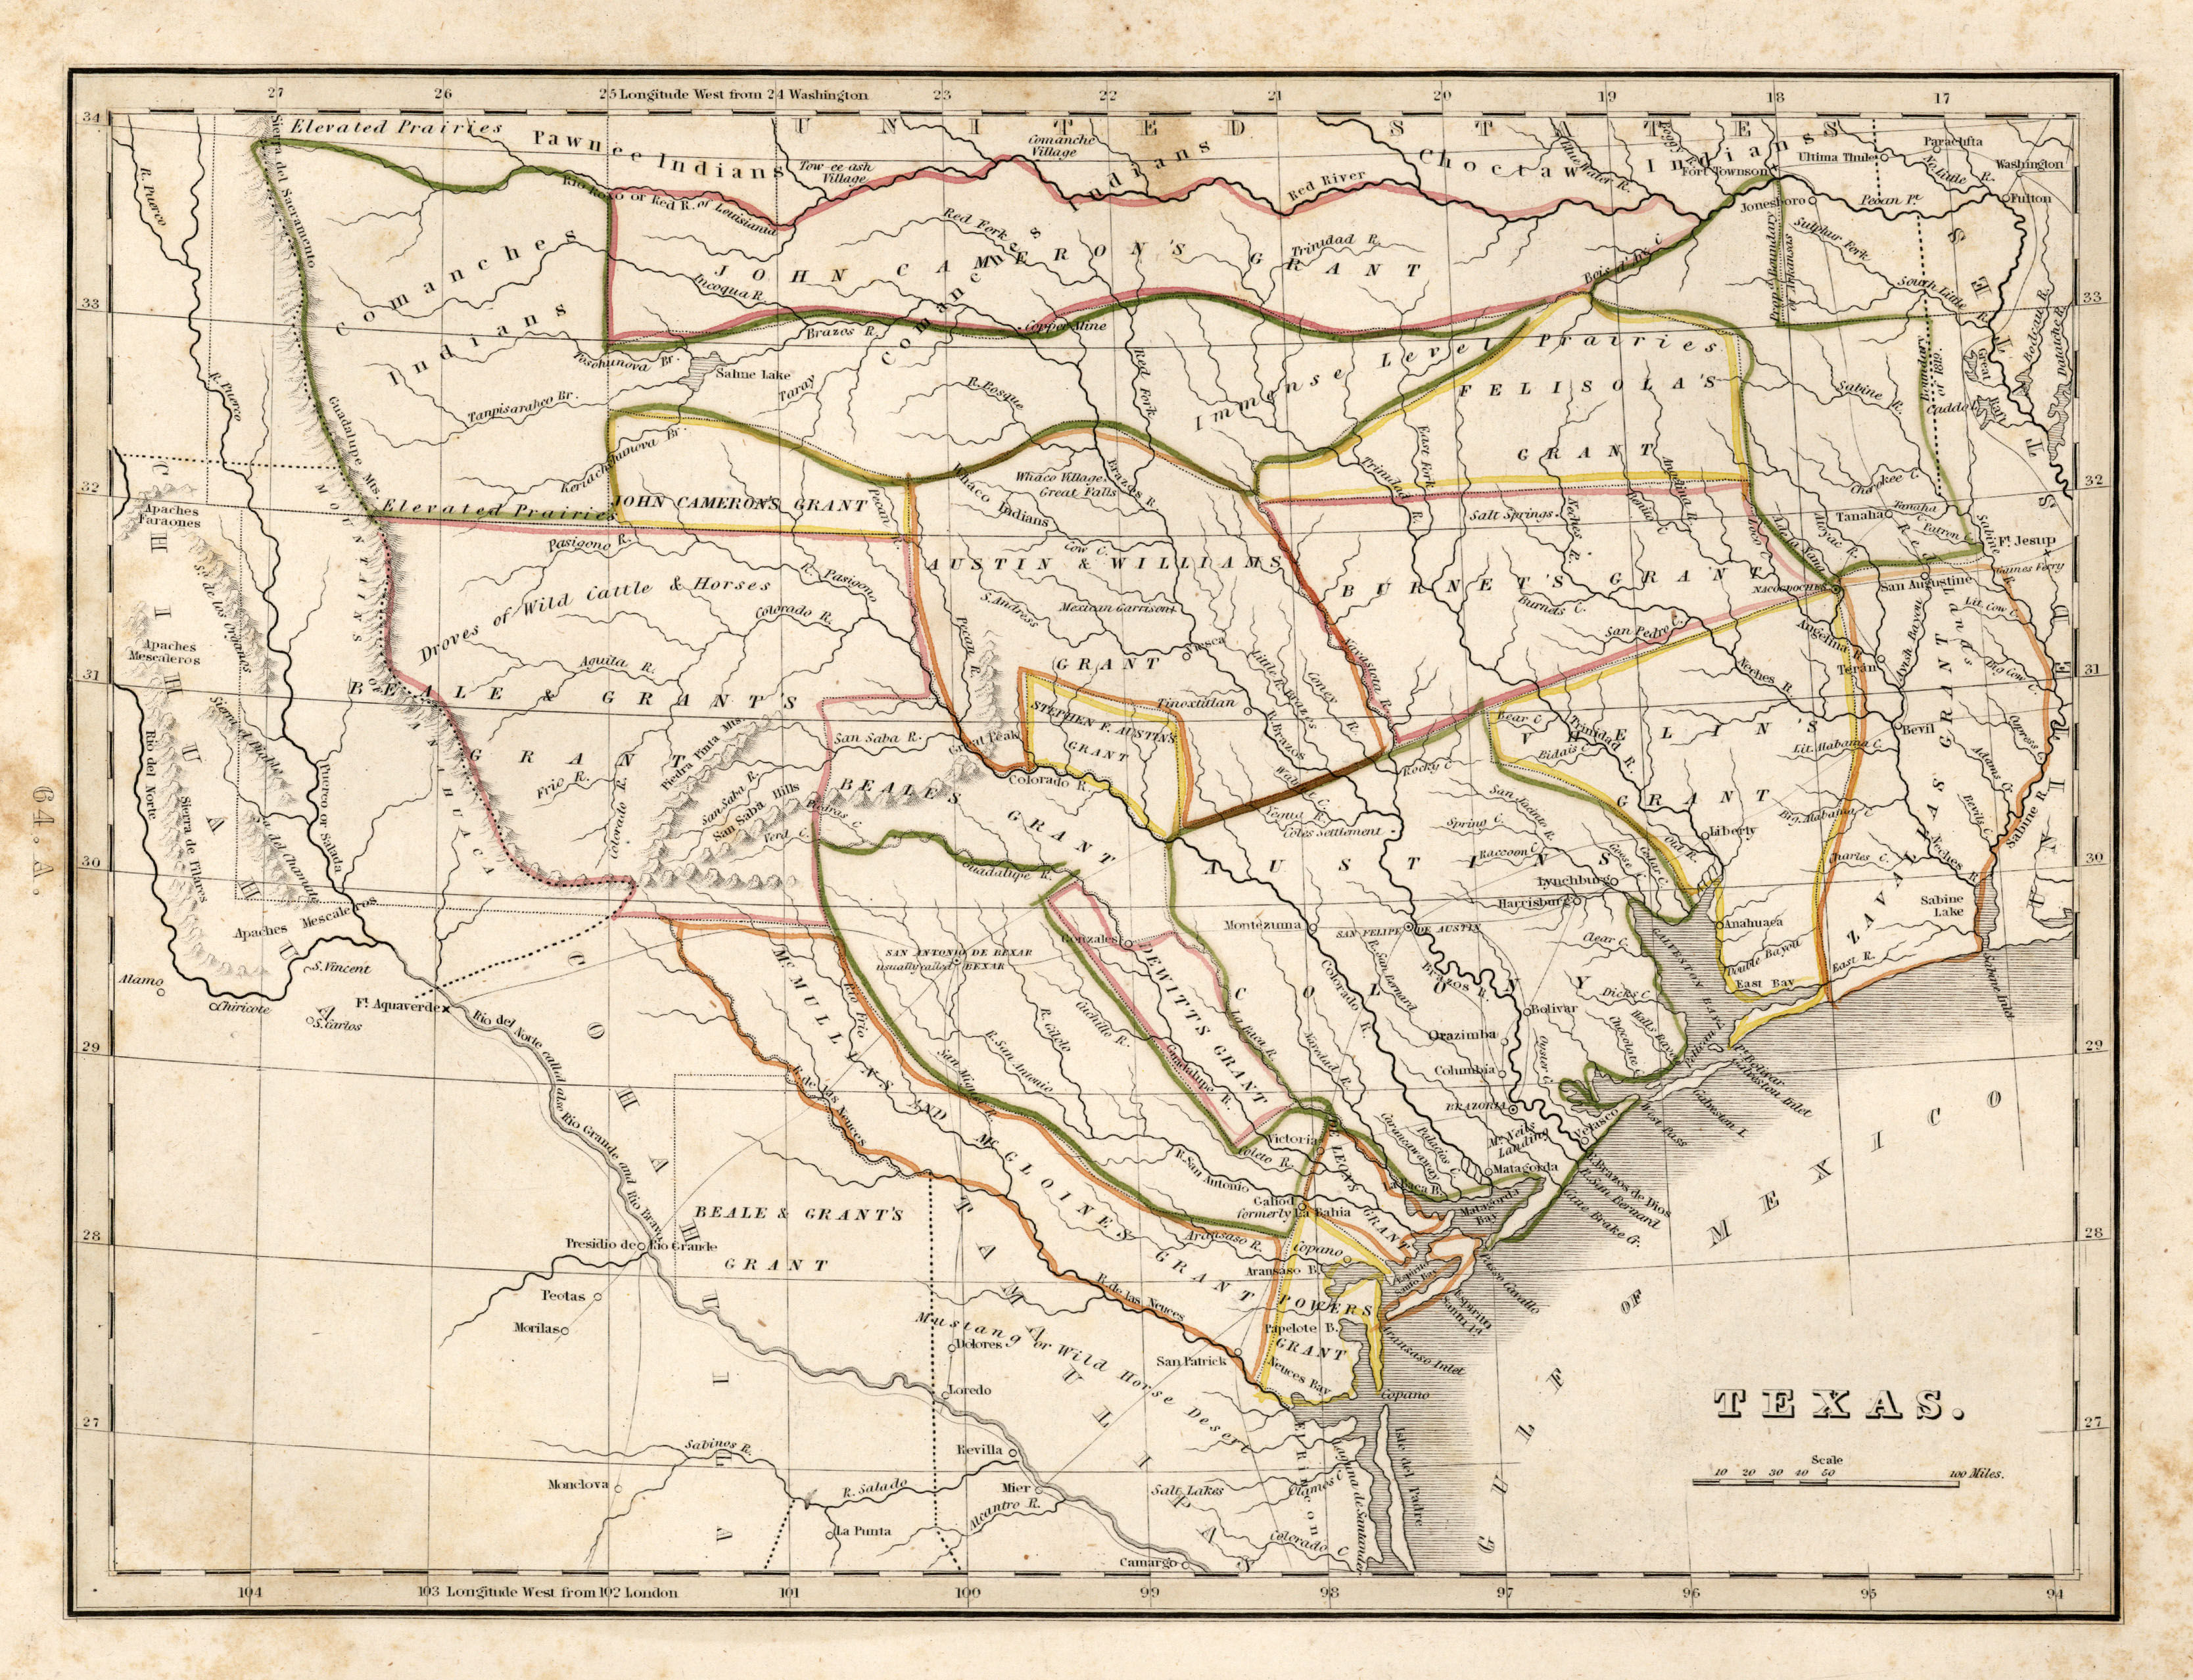 1835 texas historical map see map details from www.lib.utexas.edu